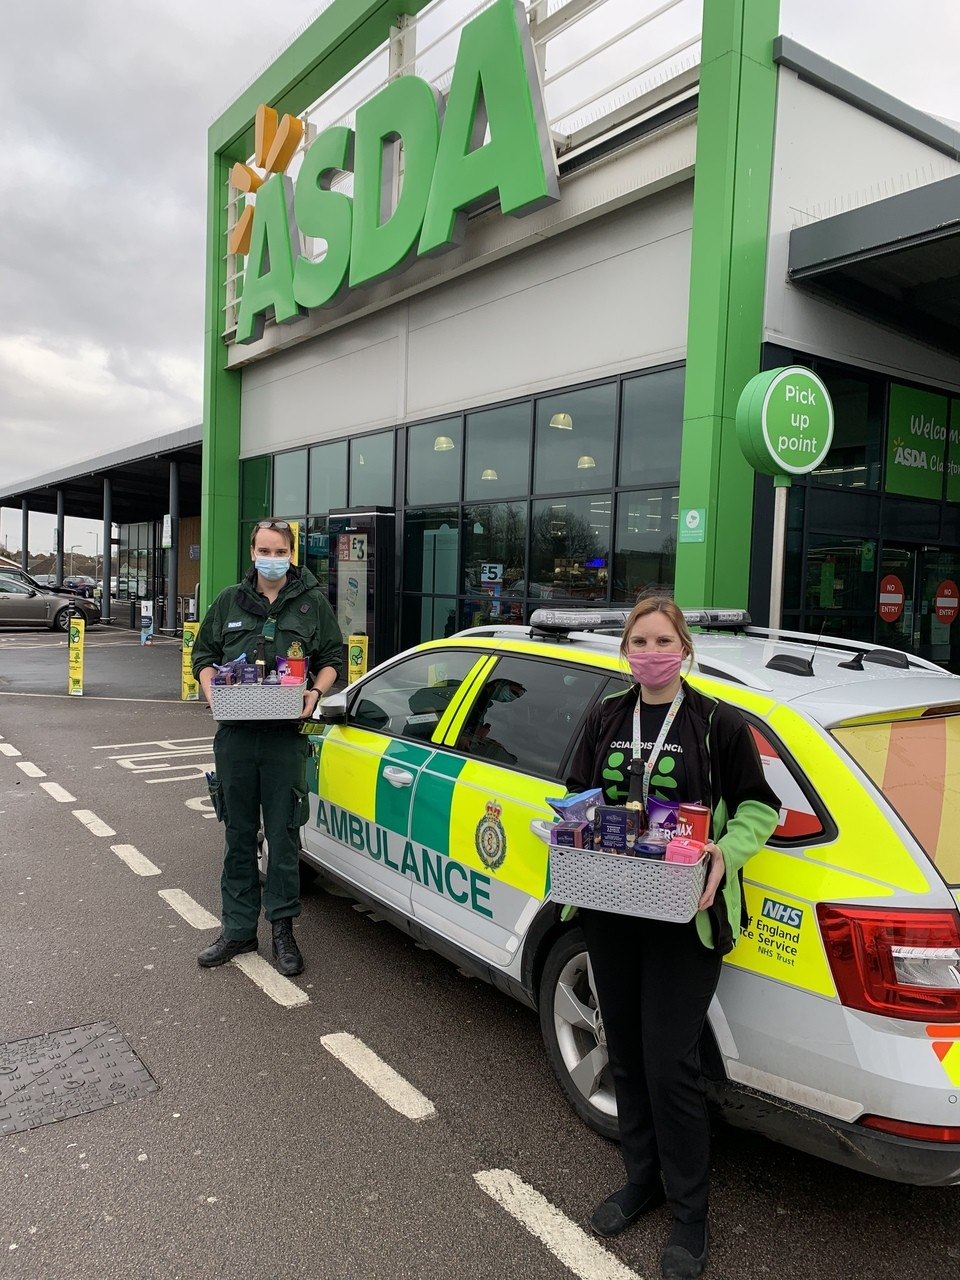 Saying thanks to the East of England Ambulance Service | Asda Clacton-on-Sea